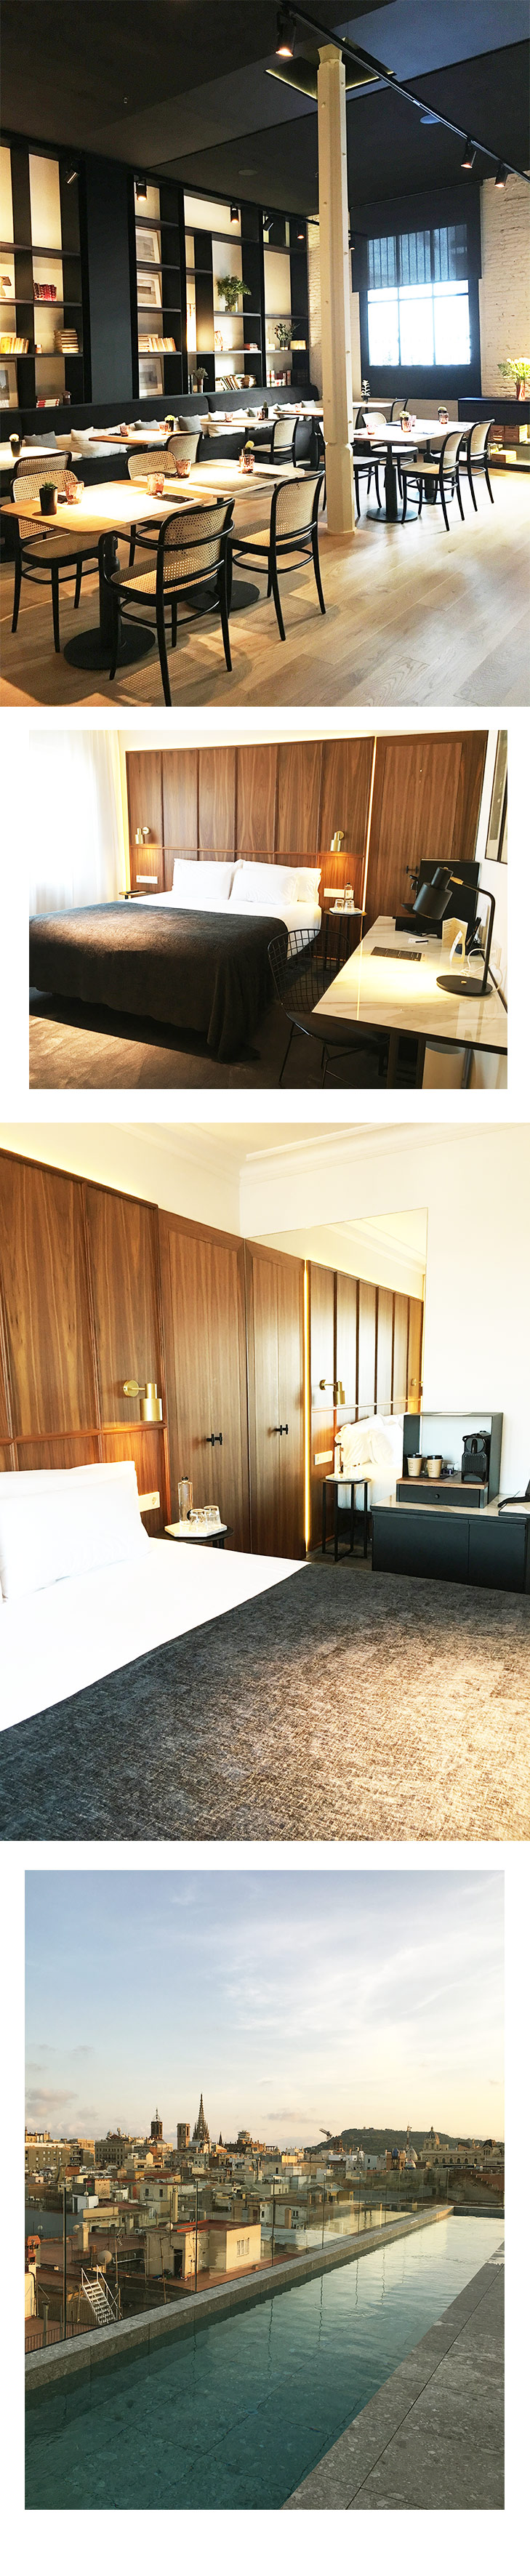 A tour around Yurbban Hotel, the bedroom, pool and dining area. Photo by May Leong.